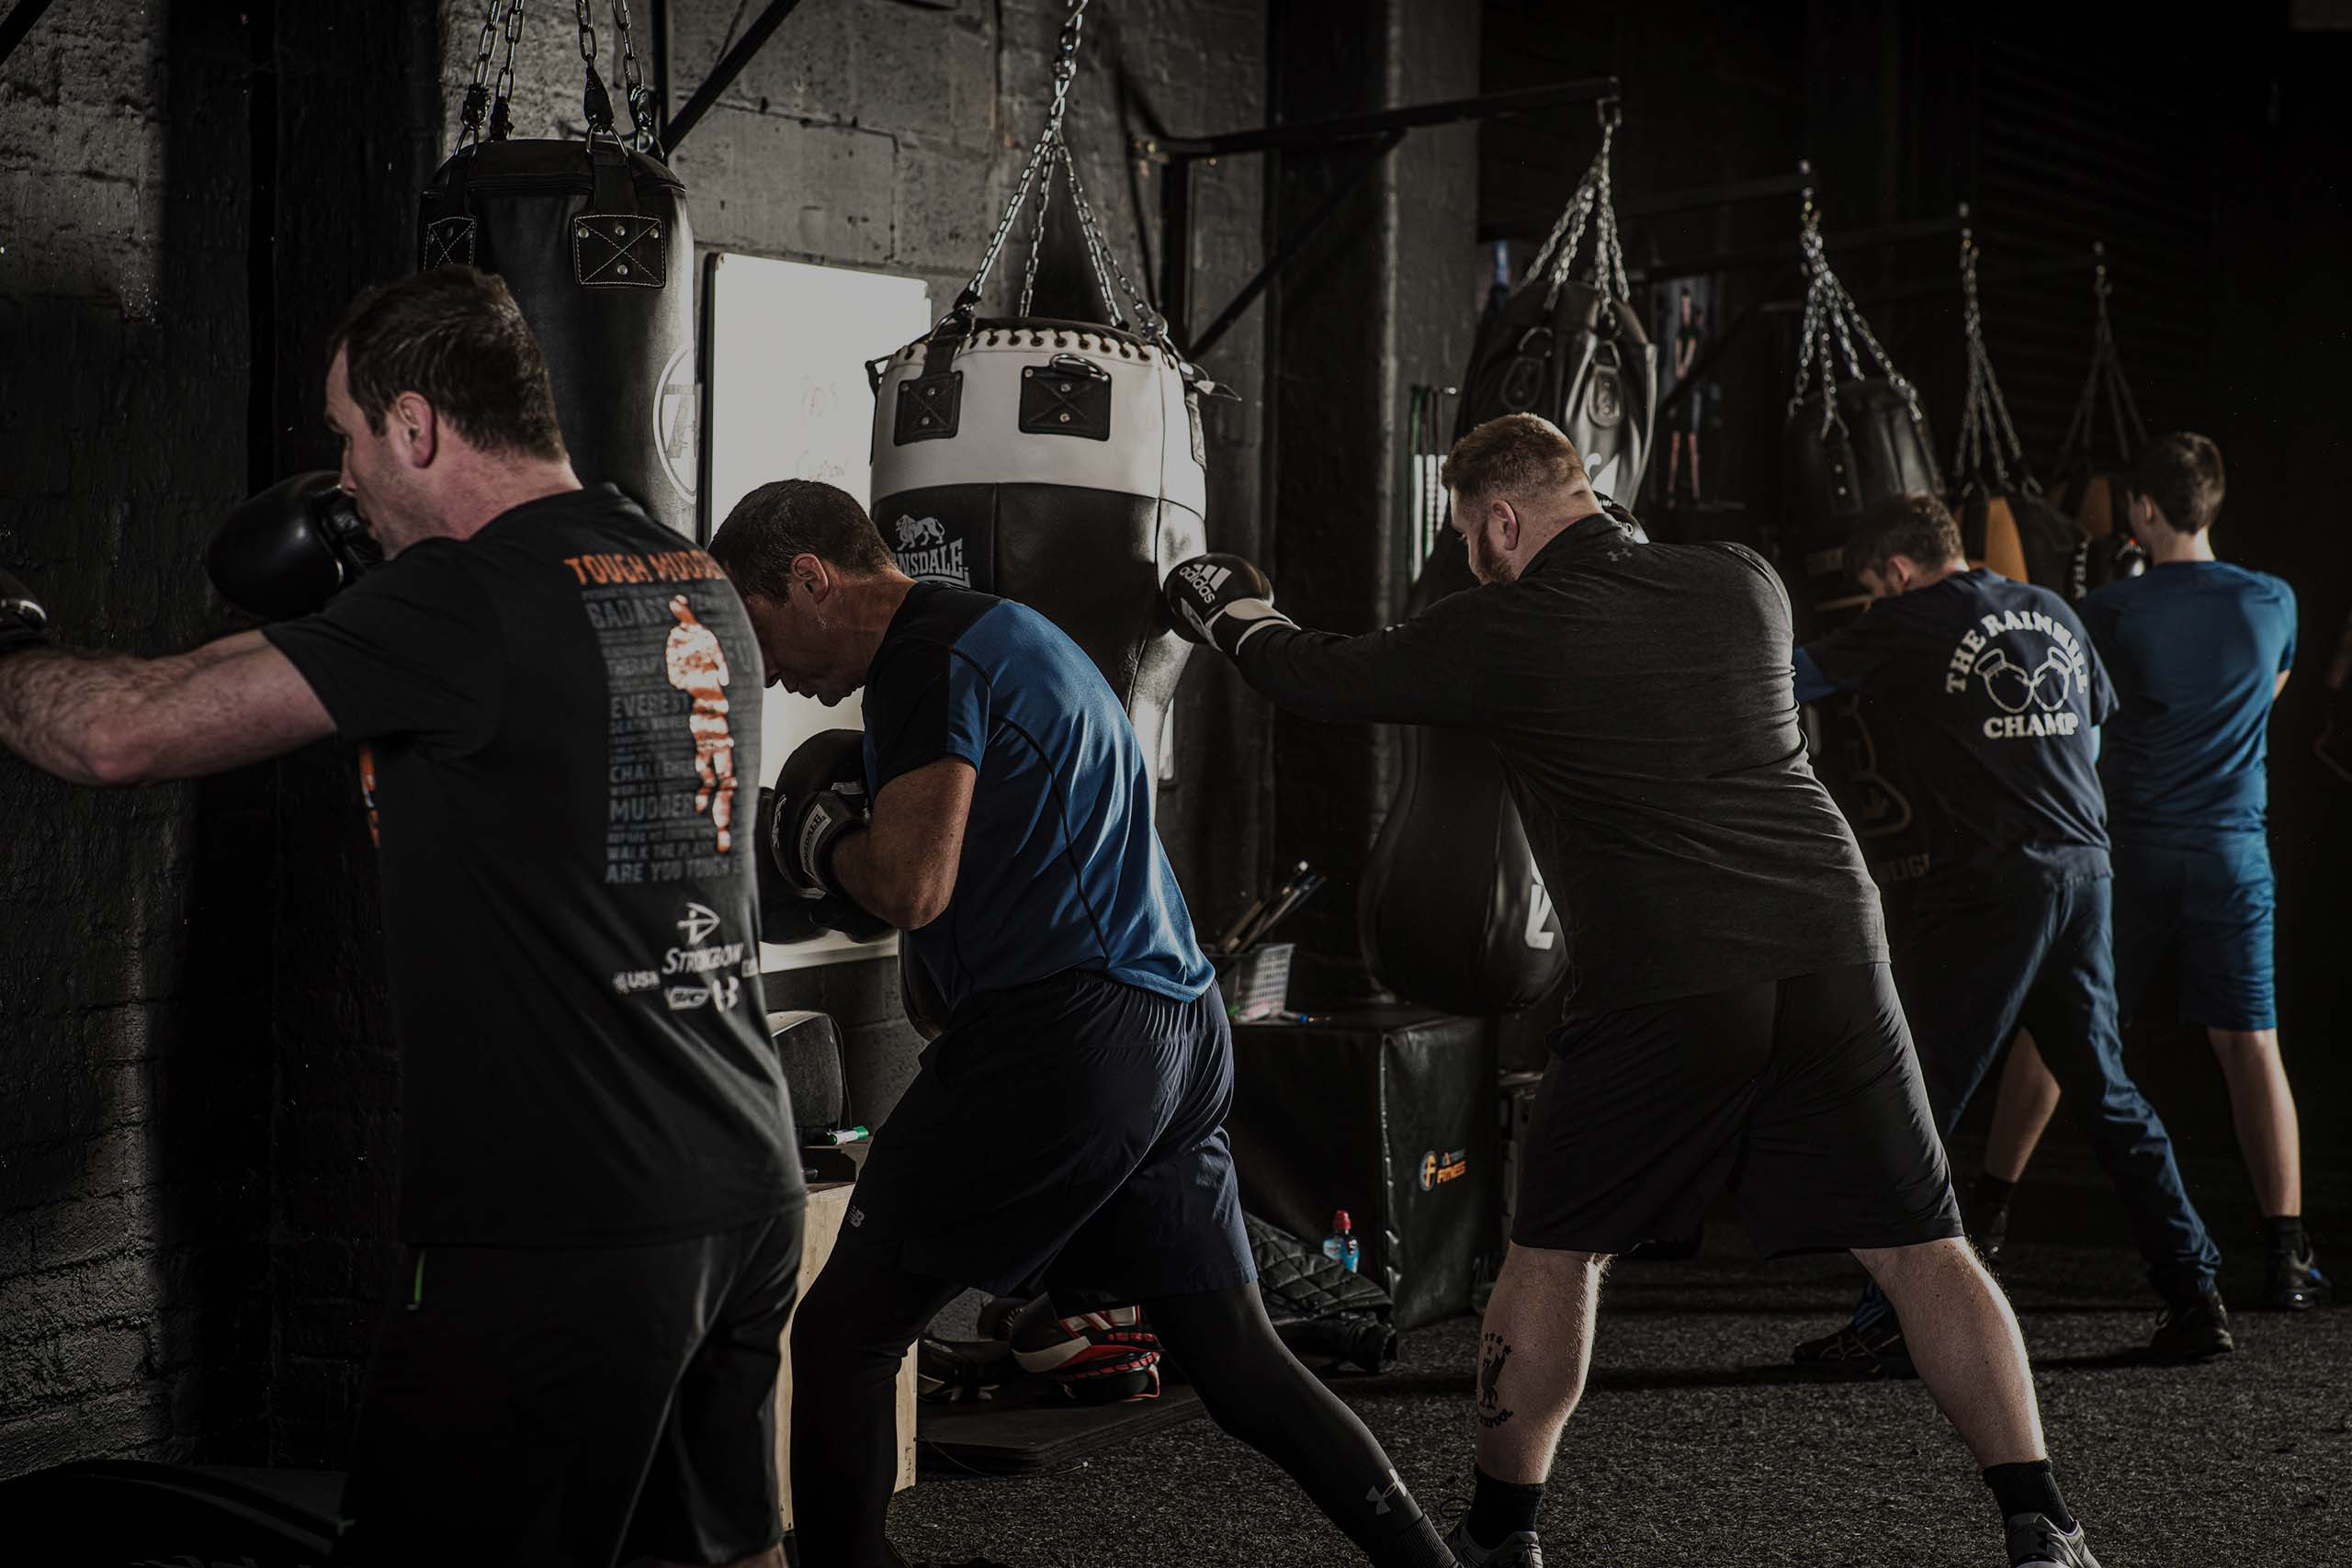 FORGE FITNESS & BOXING